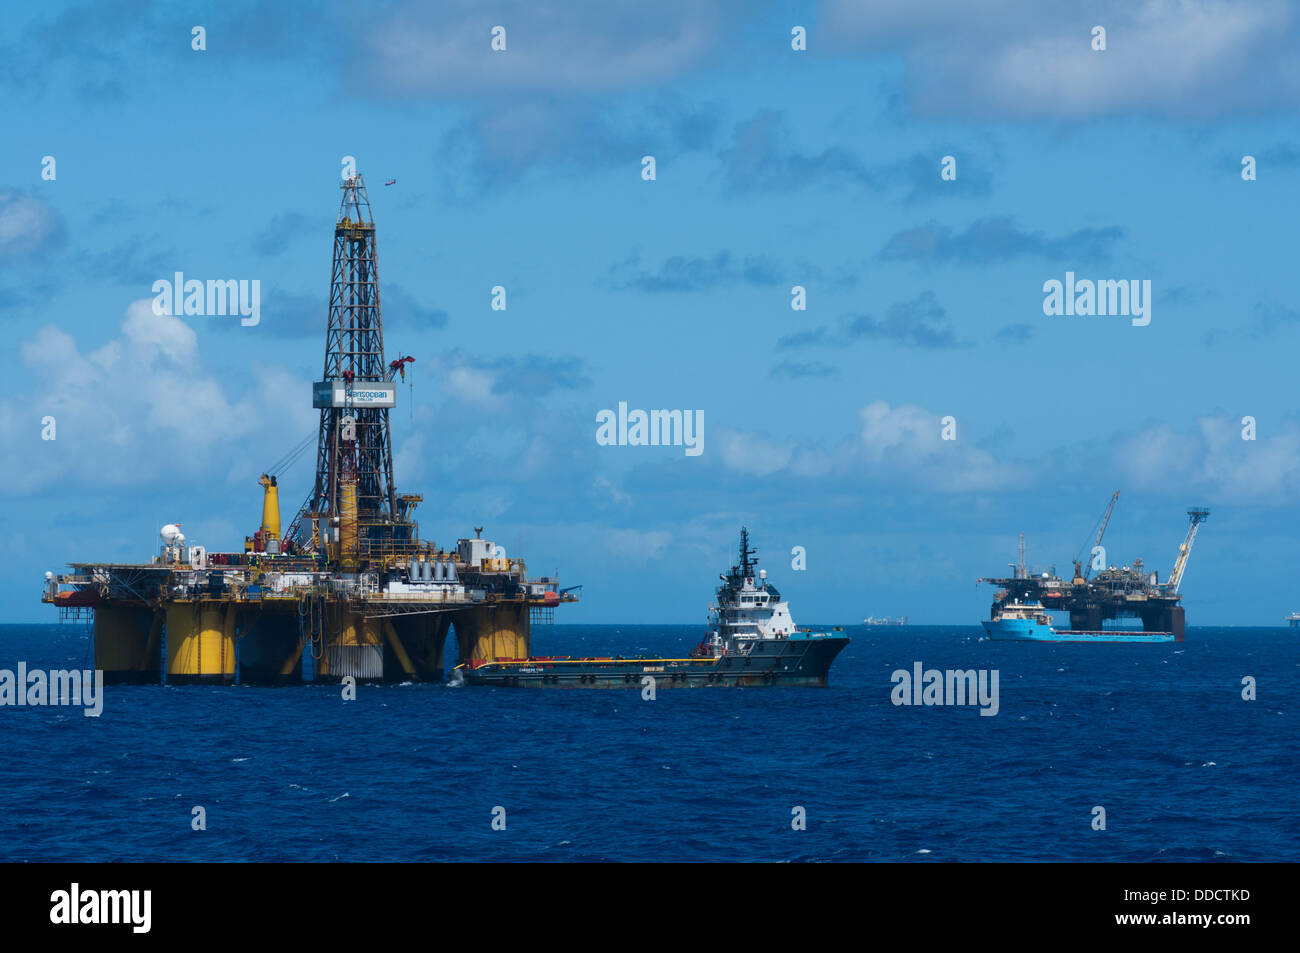 ss 50 oil drilling rig offshore Campos basin, Rio de Janeiro, Brazil. working for Petrobras. Supply vessel alongside. - Stock Image